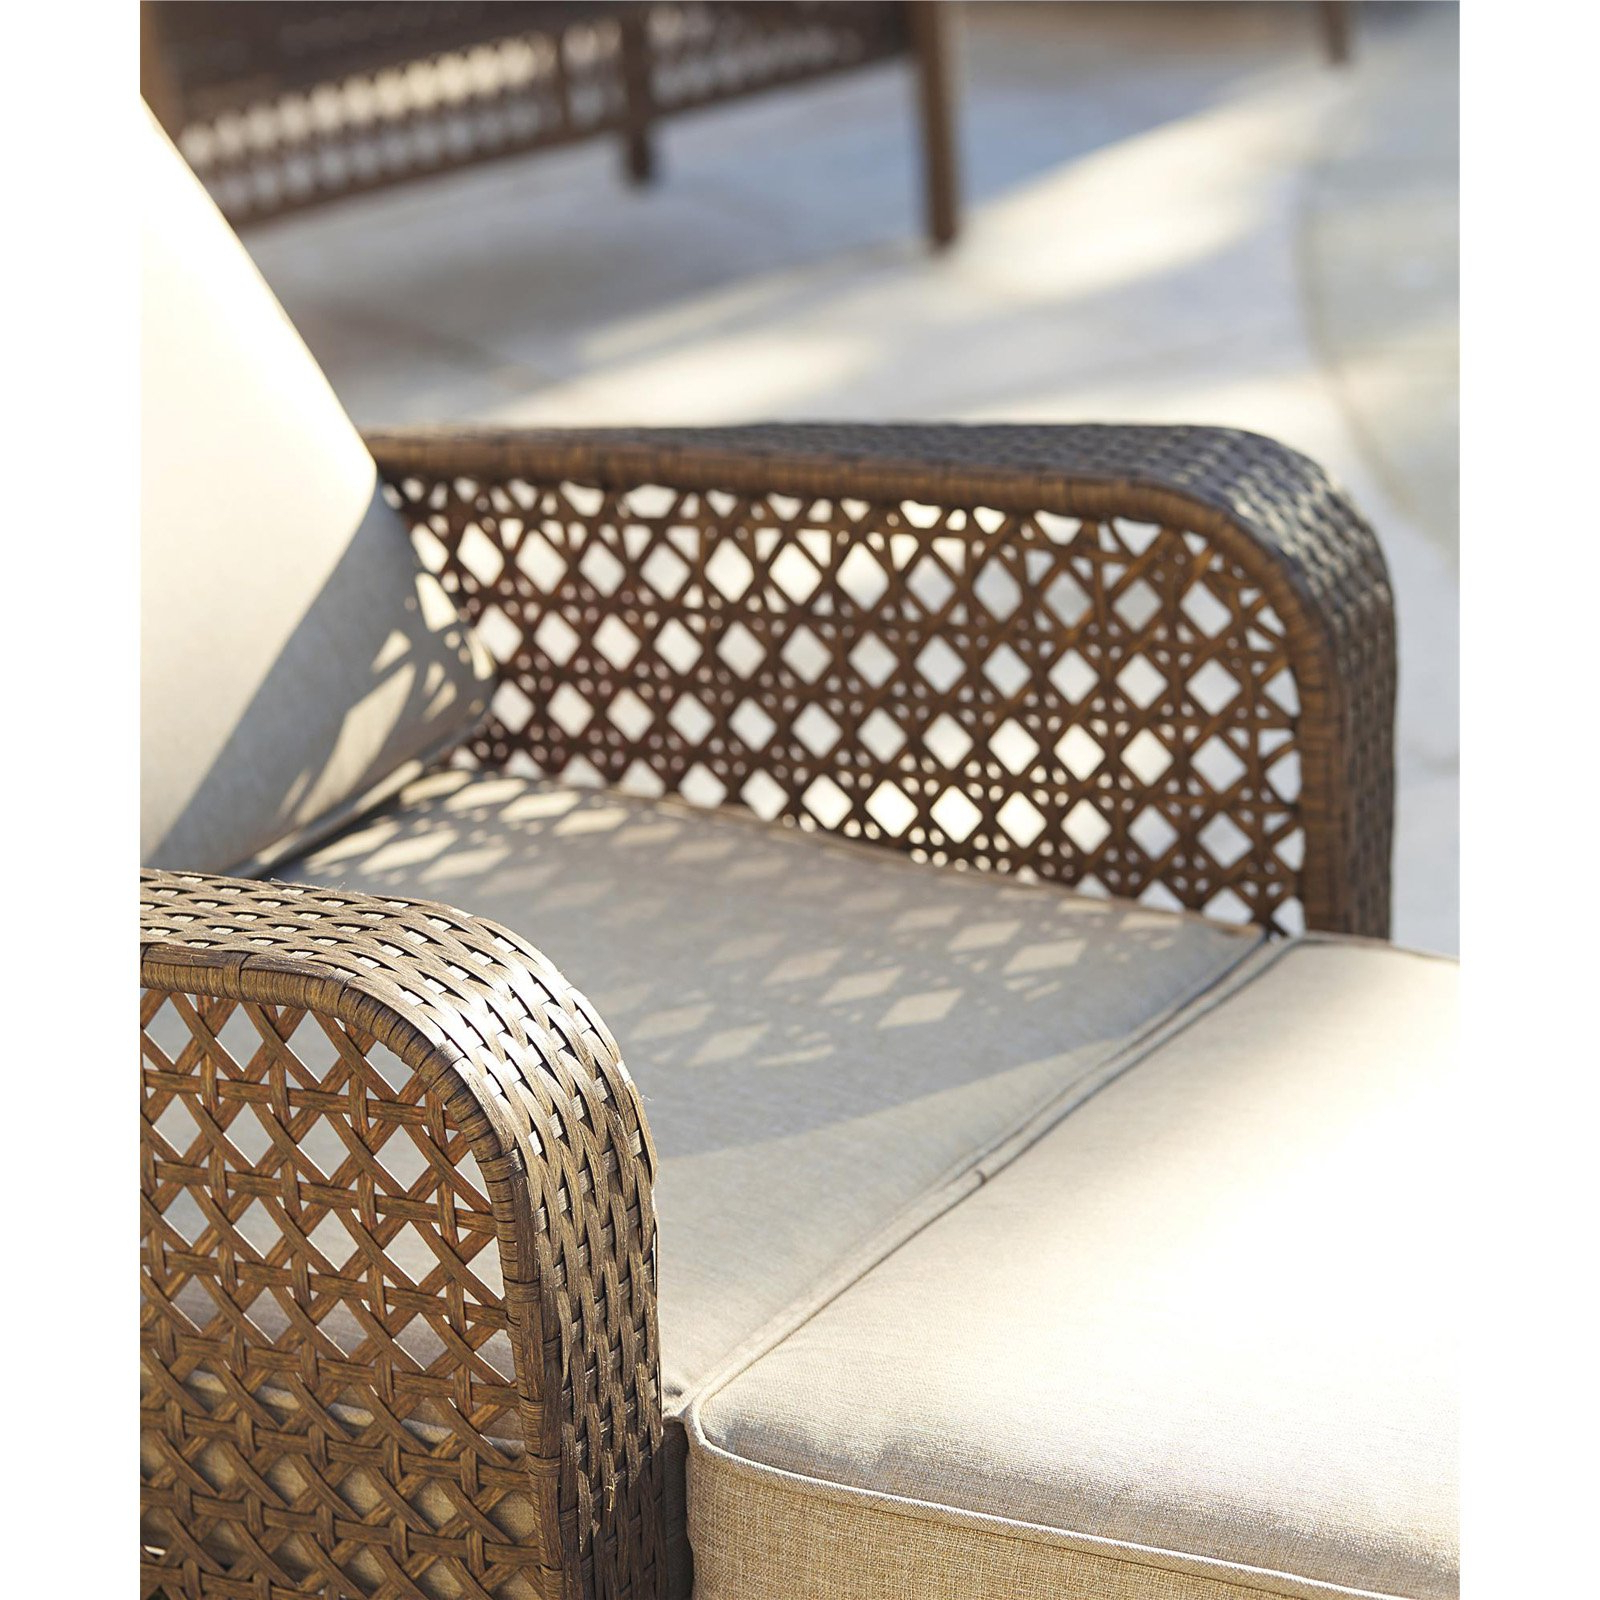 Recent Cosco Outdoor Adjustable Chaise Lounge Chair Lakewood Ranch Steel Woven Wicker Patio Furniture With Cushion, Brown Within Cosco Outdoor Steel Woven Wicker Chaise Lounge Chairs (View 5 of 25)